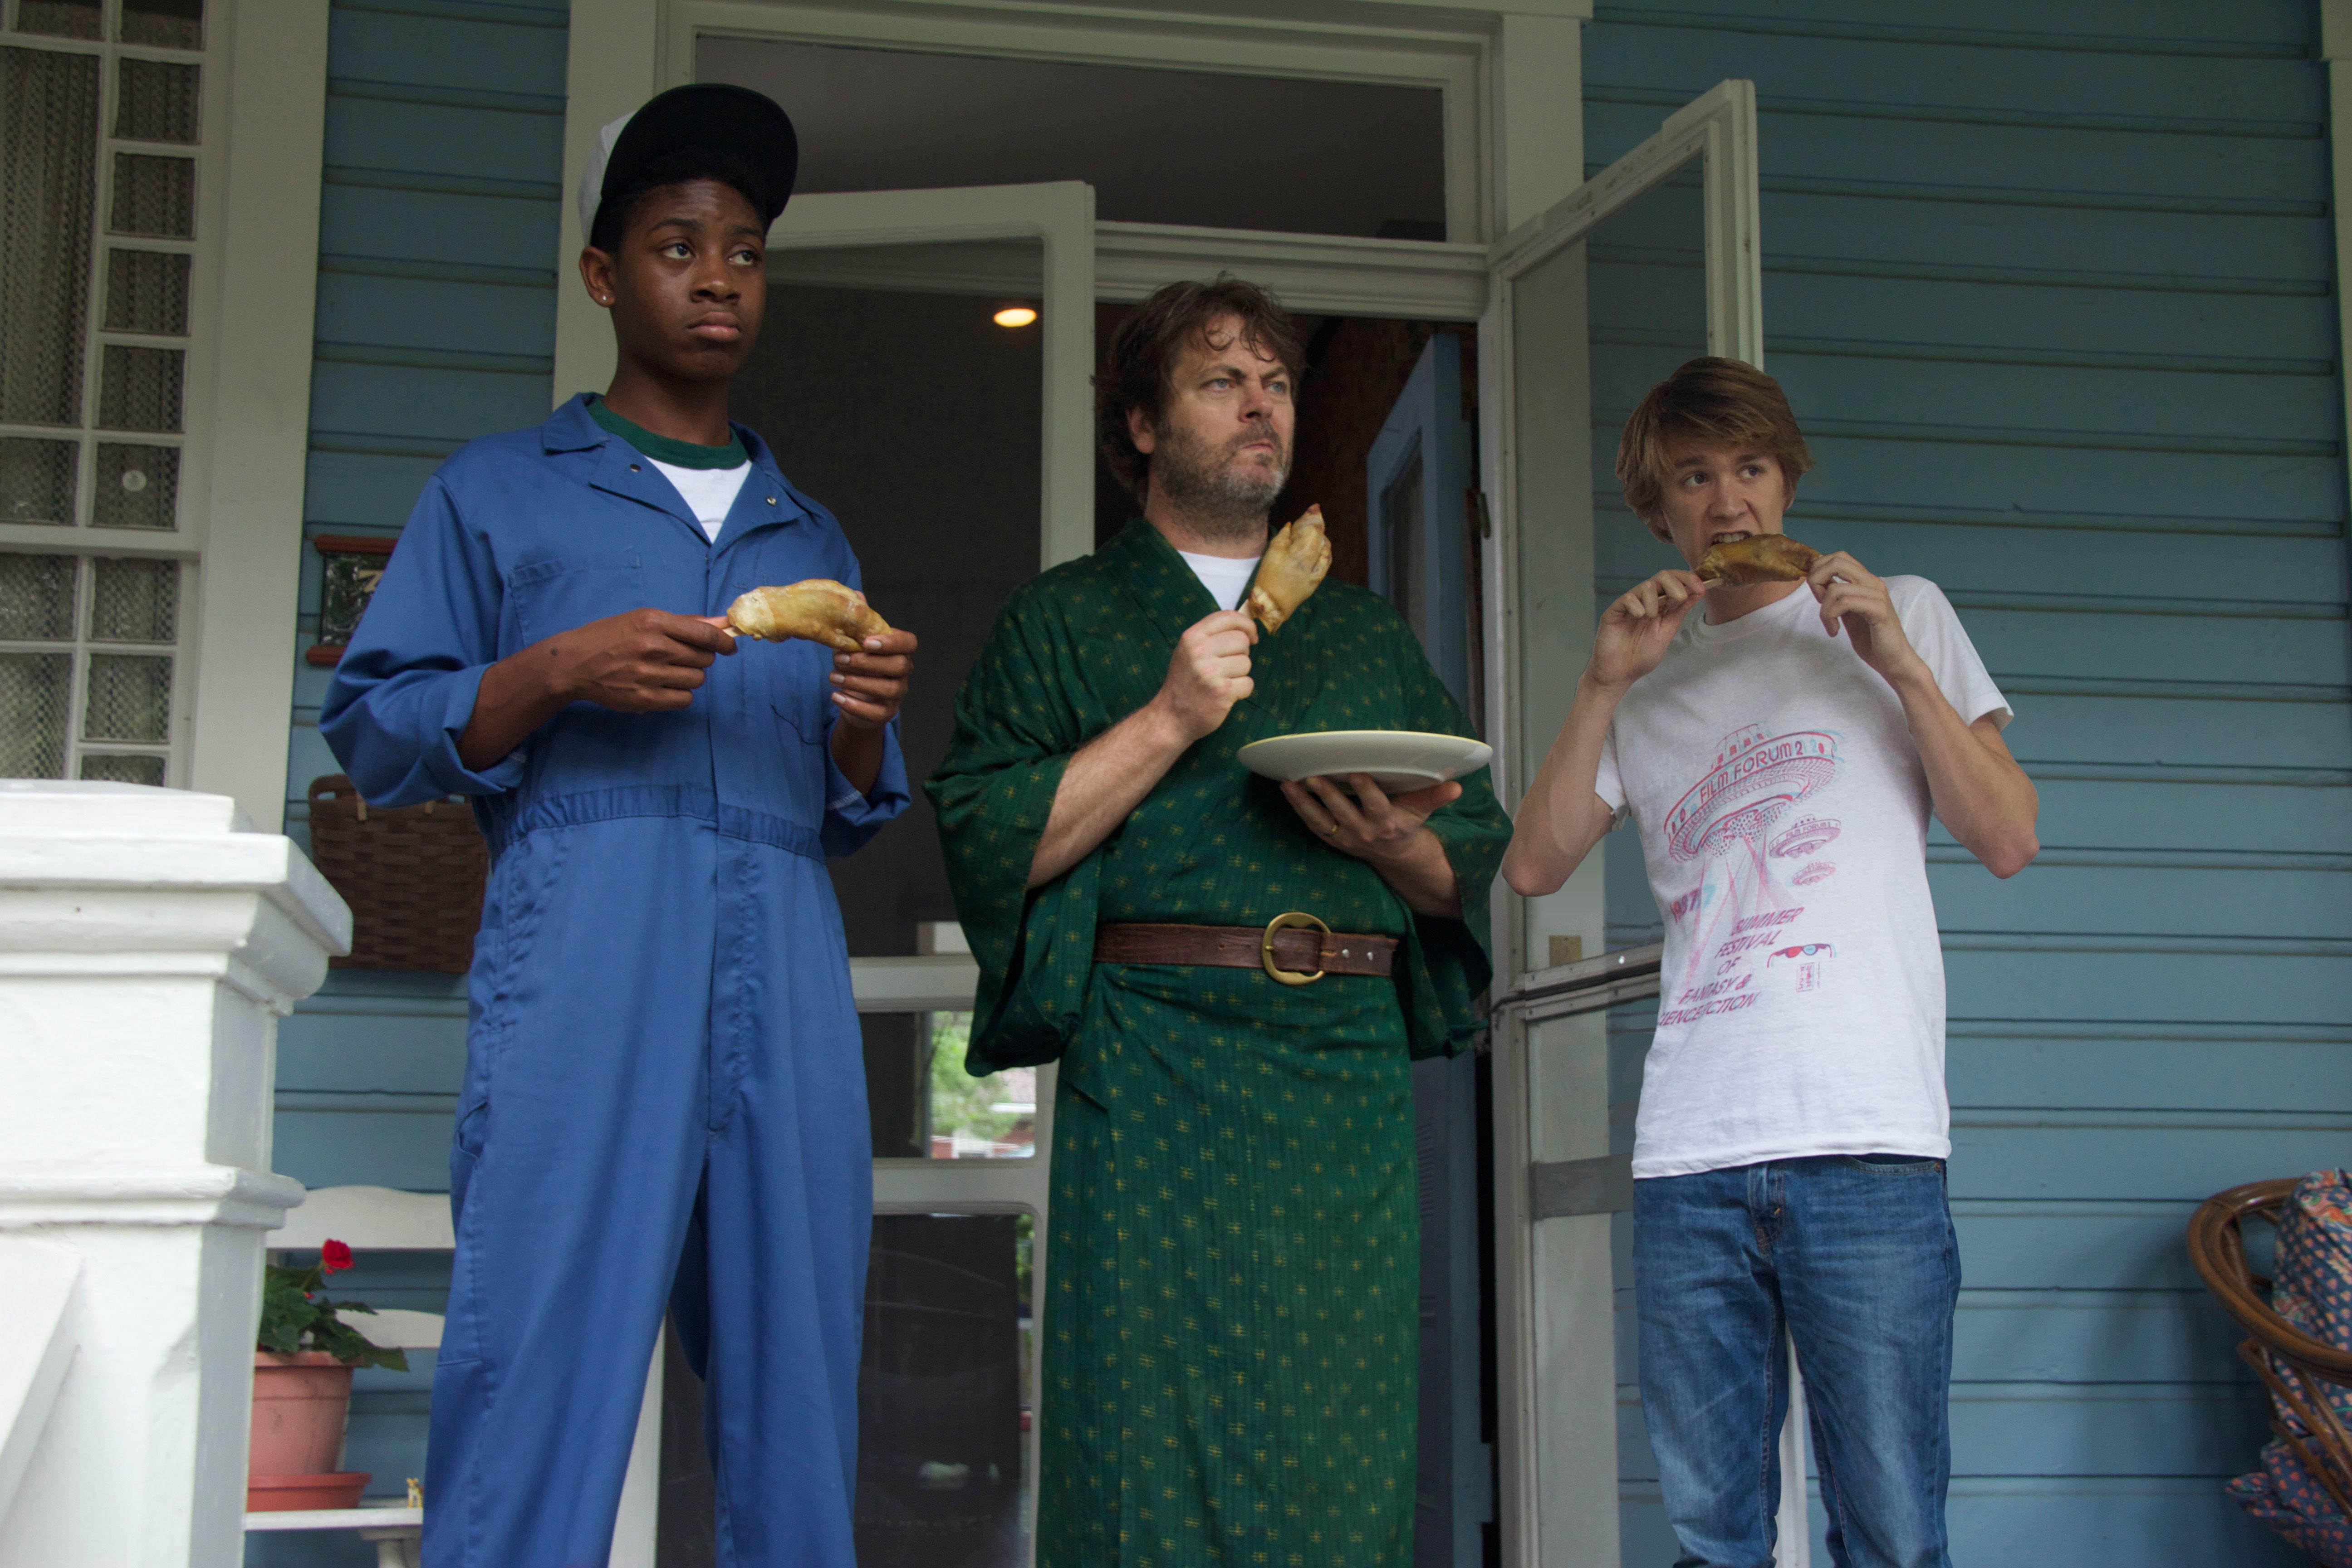 Check out the movie photos of 'Me and Earl and The Dying Girl'